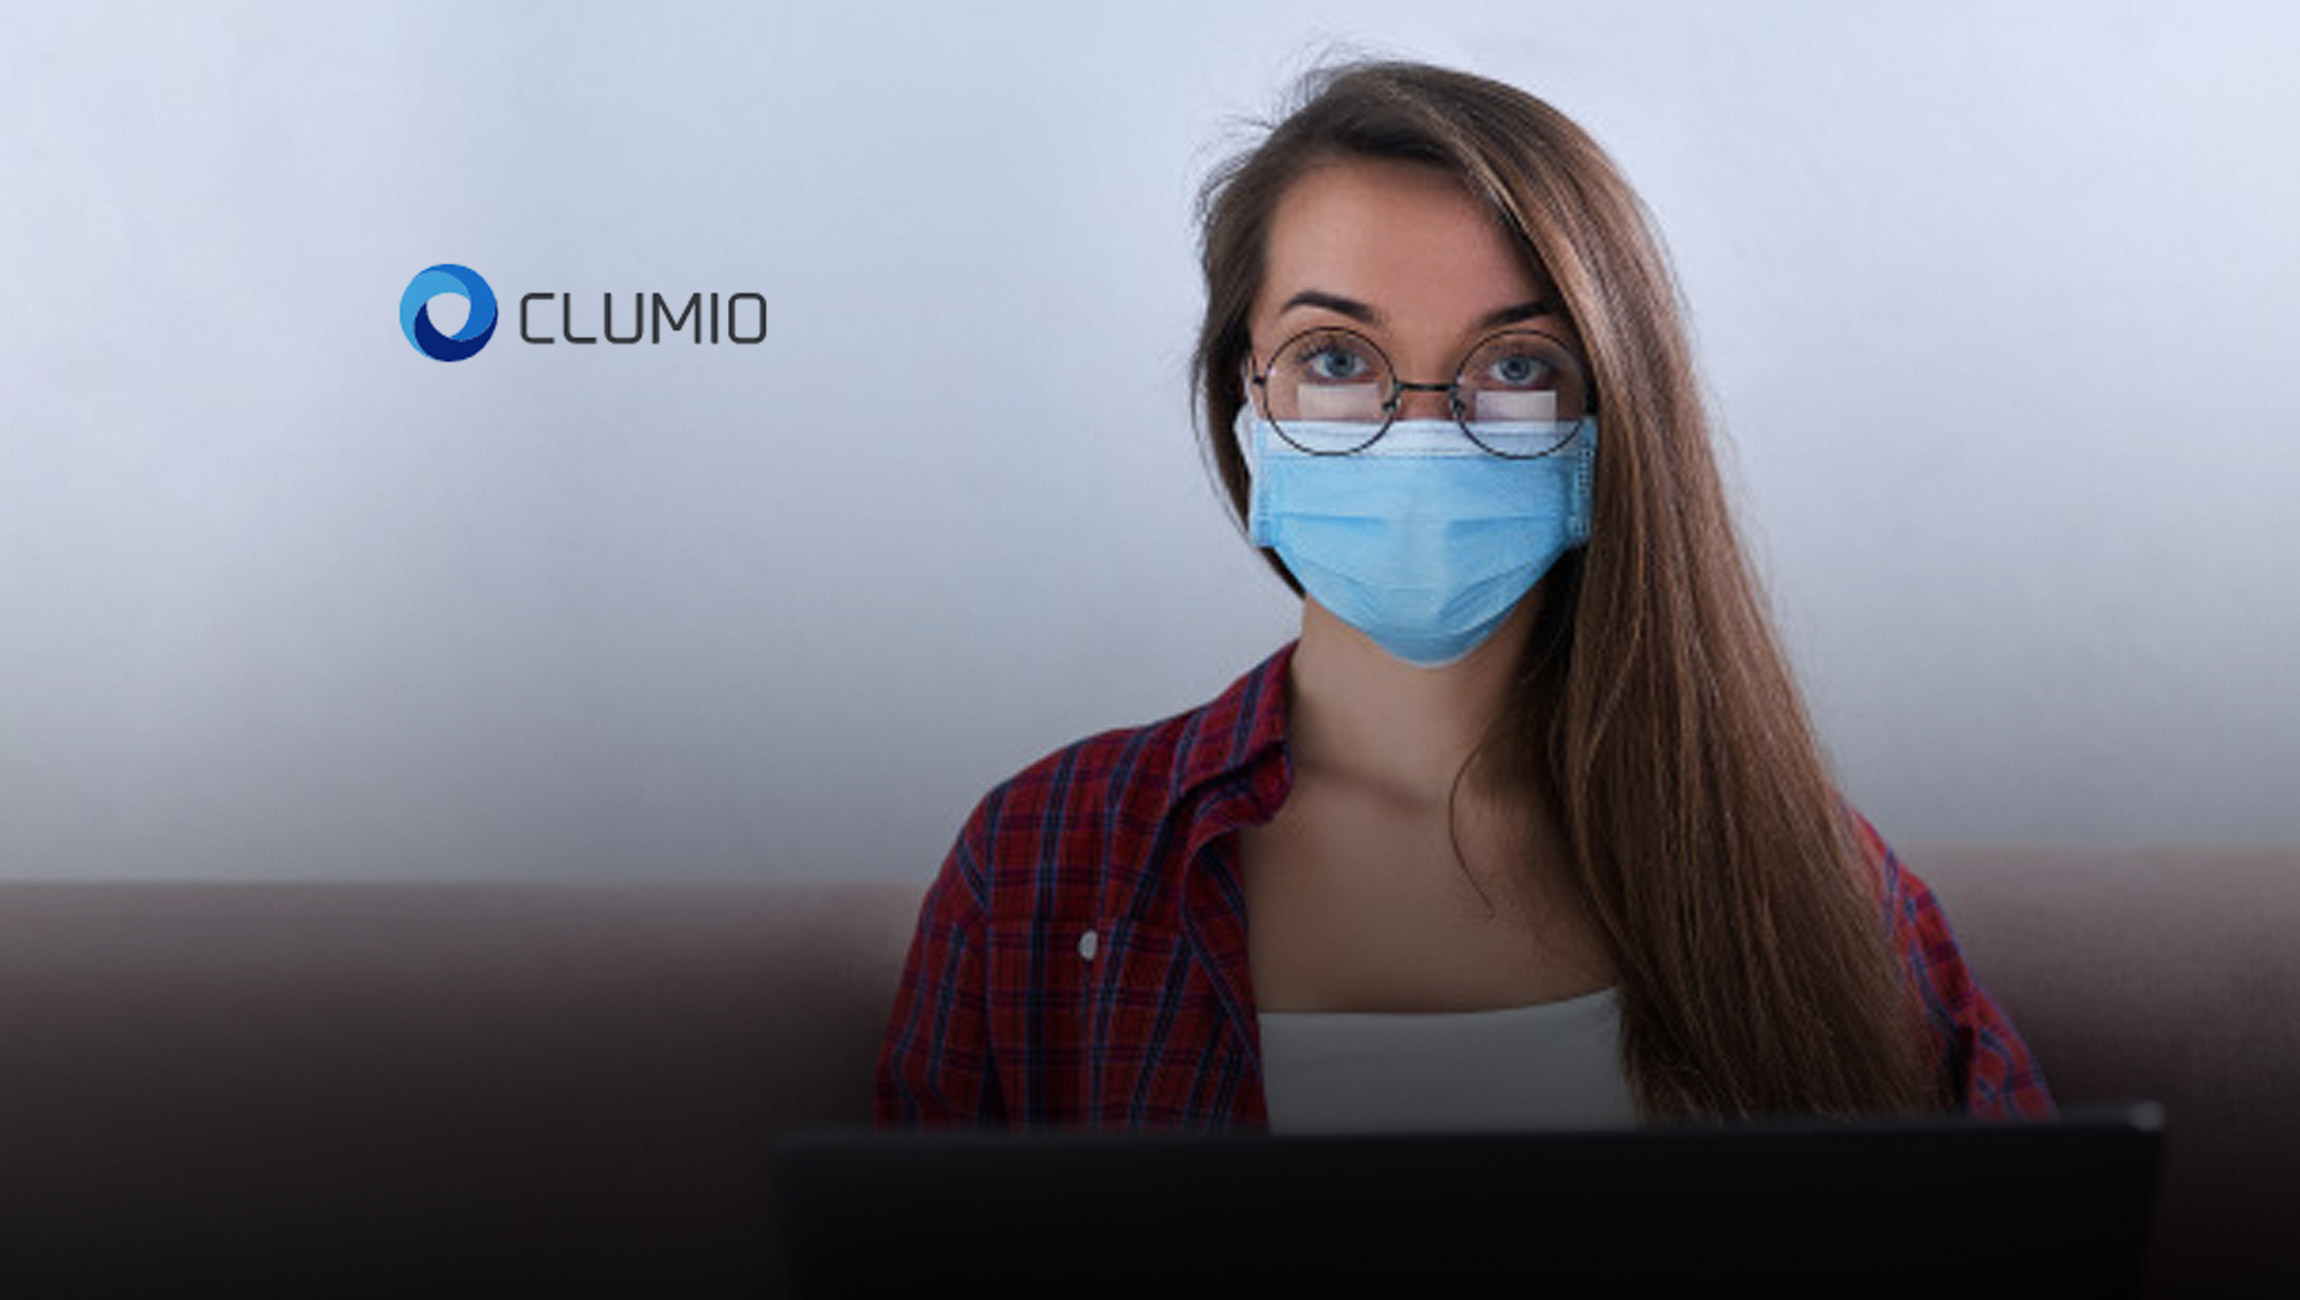 Cost, Complexity and Compliance: Clumio Addresses Enterprise All-Cloud Needs Amidst COVID Challenges